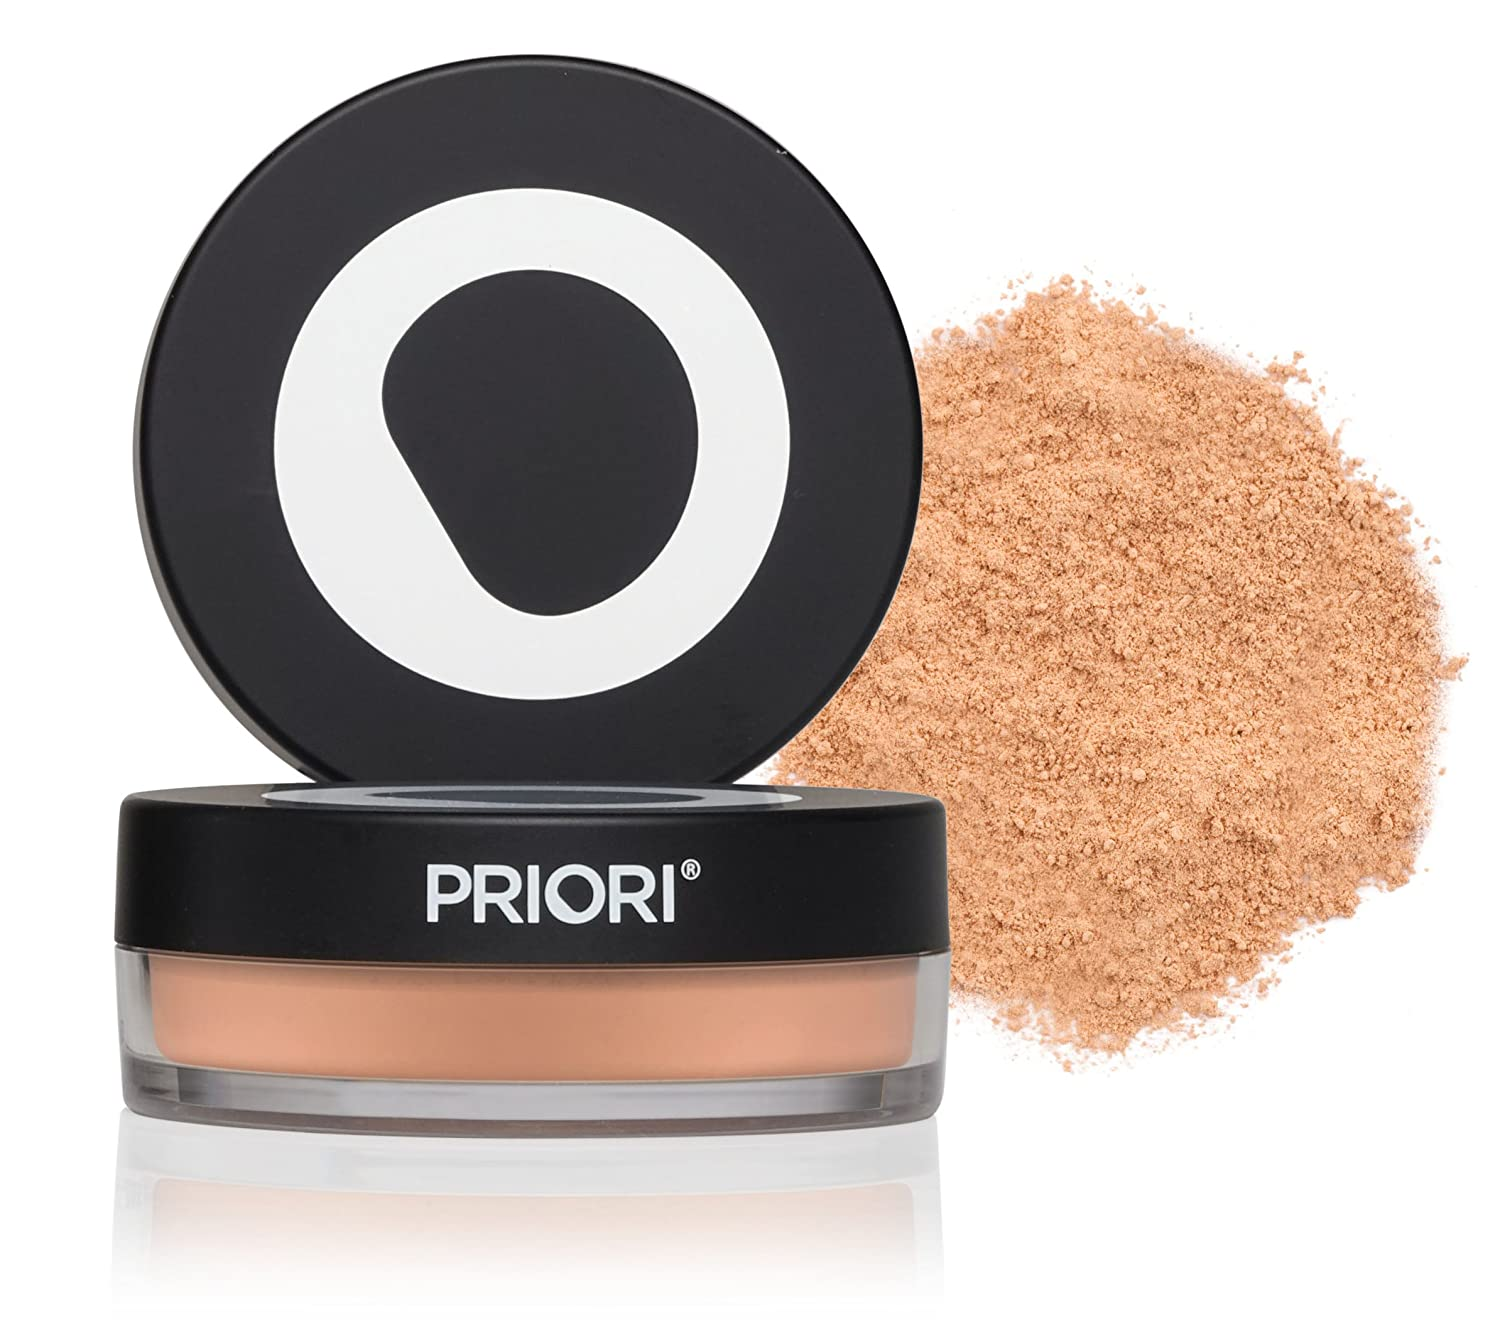 Spring new work one after another Priori Free shipping / New Skincare All-Natural Mineral Sunsc SPF Powder 25